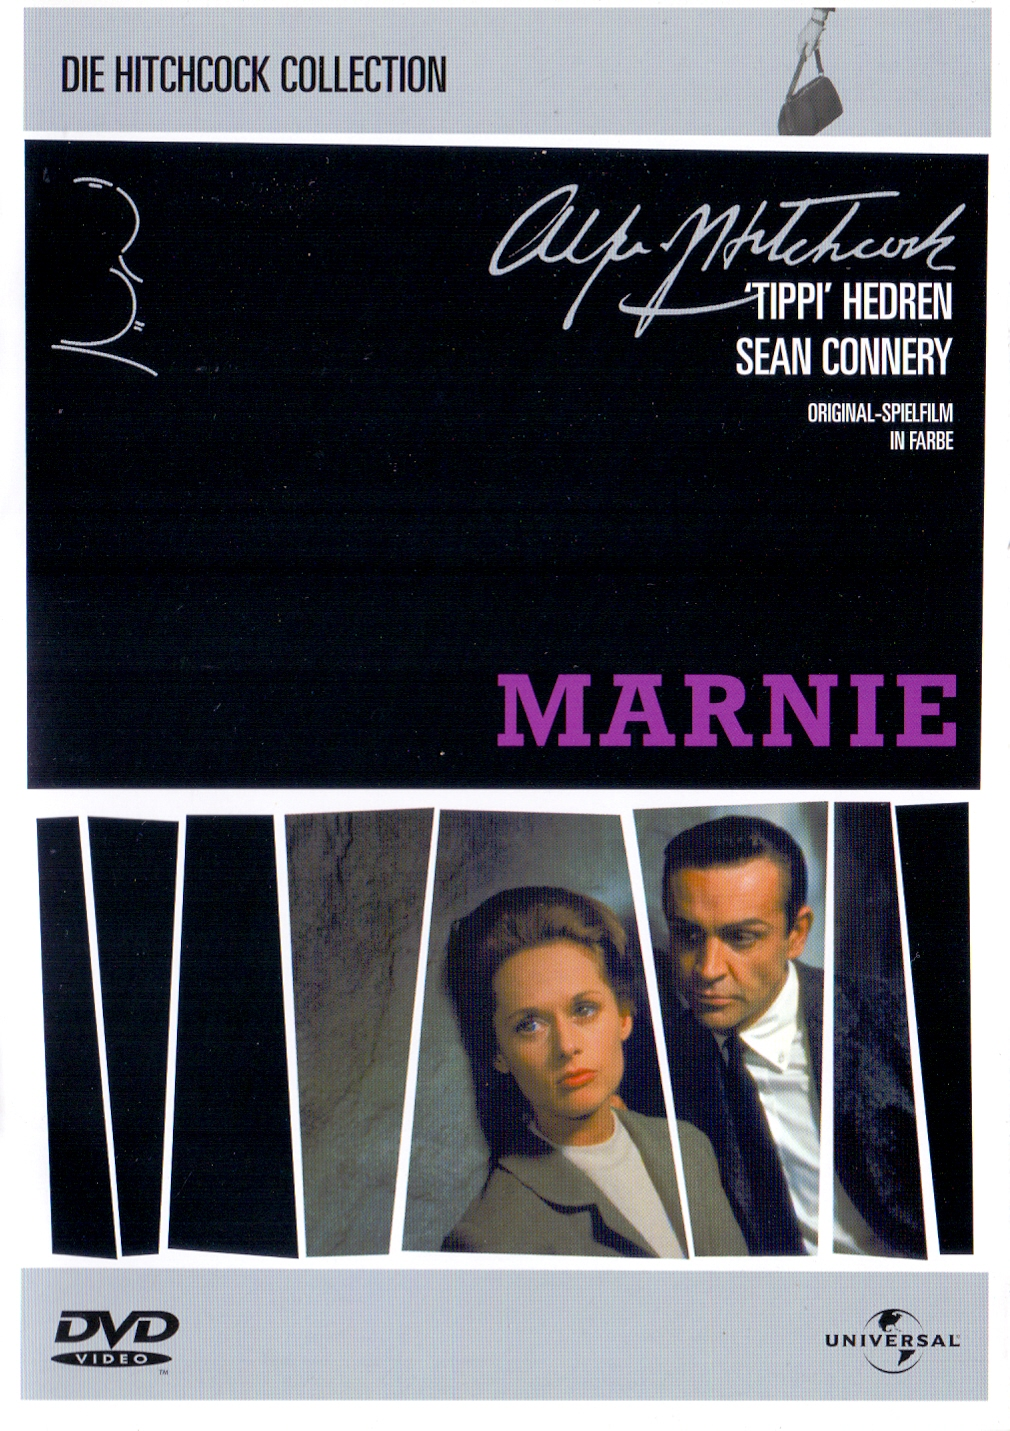 Die Hitchcock Collection: Marnie